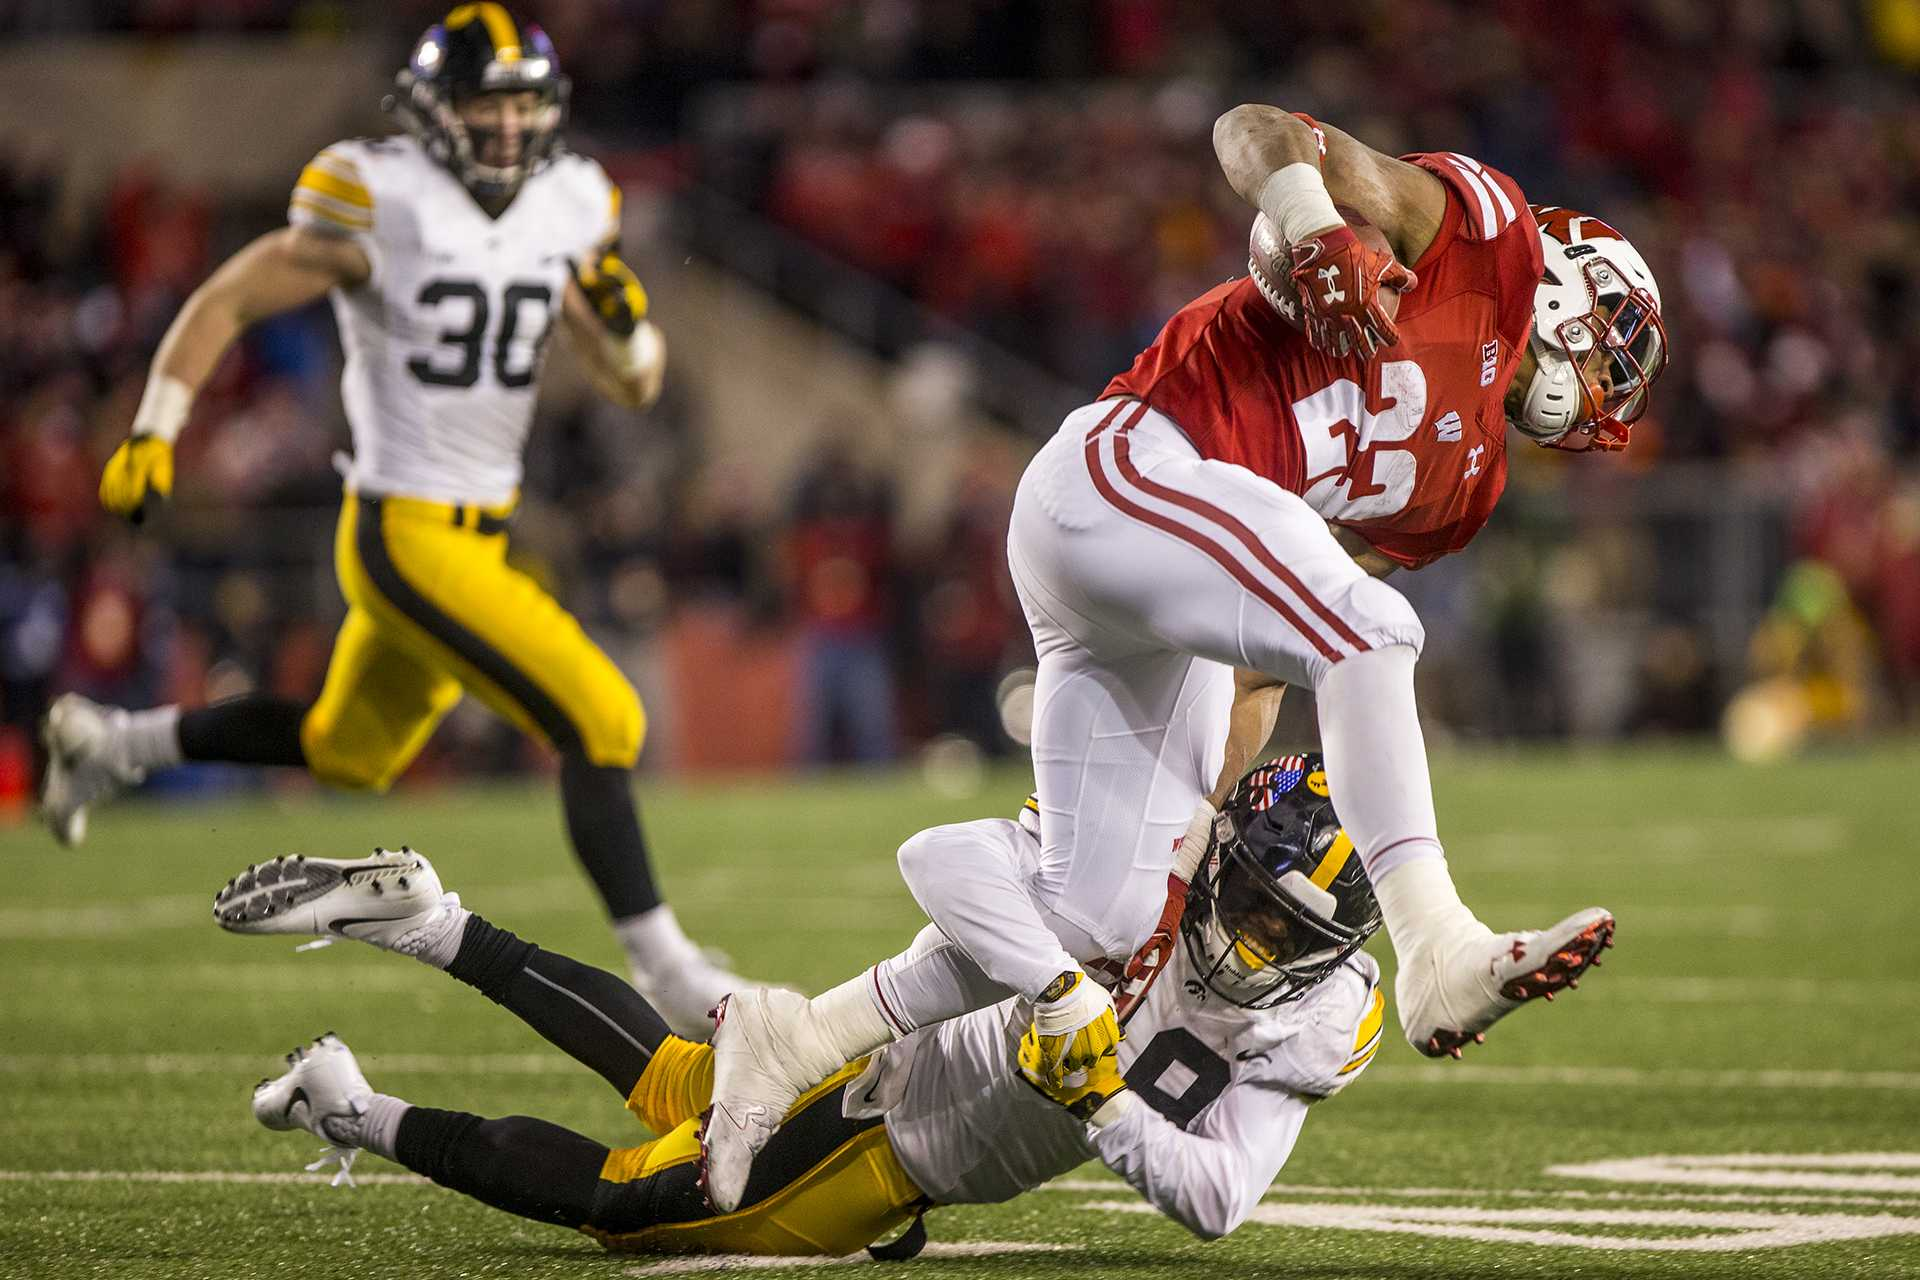 Iowa cornerback Miles Taylor tackles Wisconsin running back Jonathan Taylor during Iowa's game against Wisconsin at Camp Randall Stadium on Saturday, Nov. 11, 2017. The badgers defeated the Hawkeyes 38-14. (Nick Rohlman/The Daily Iowan)